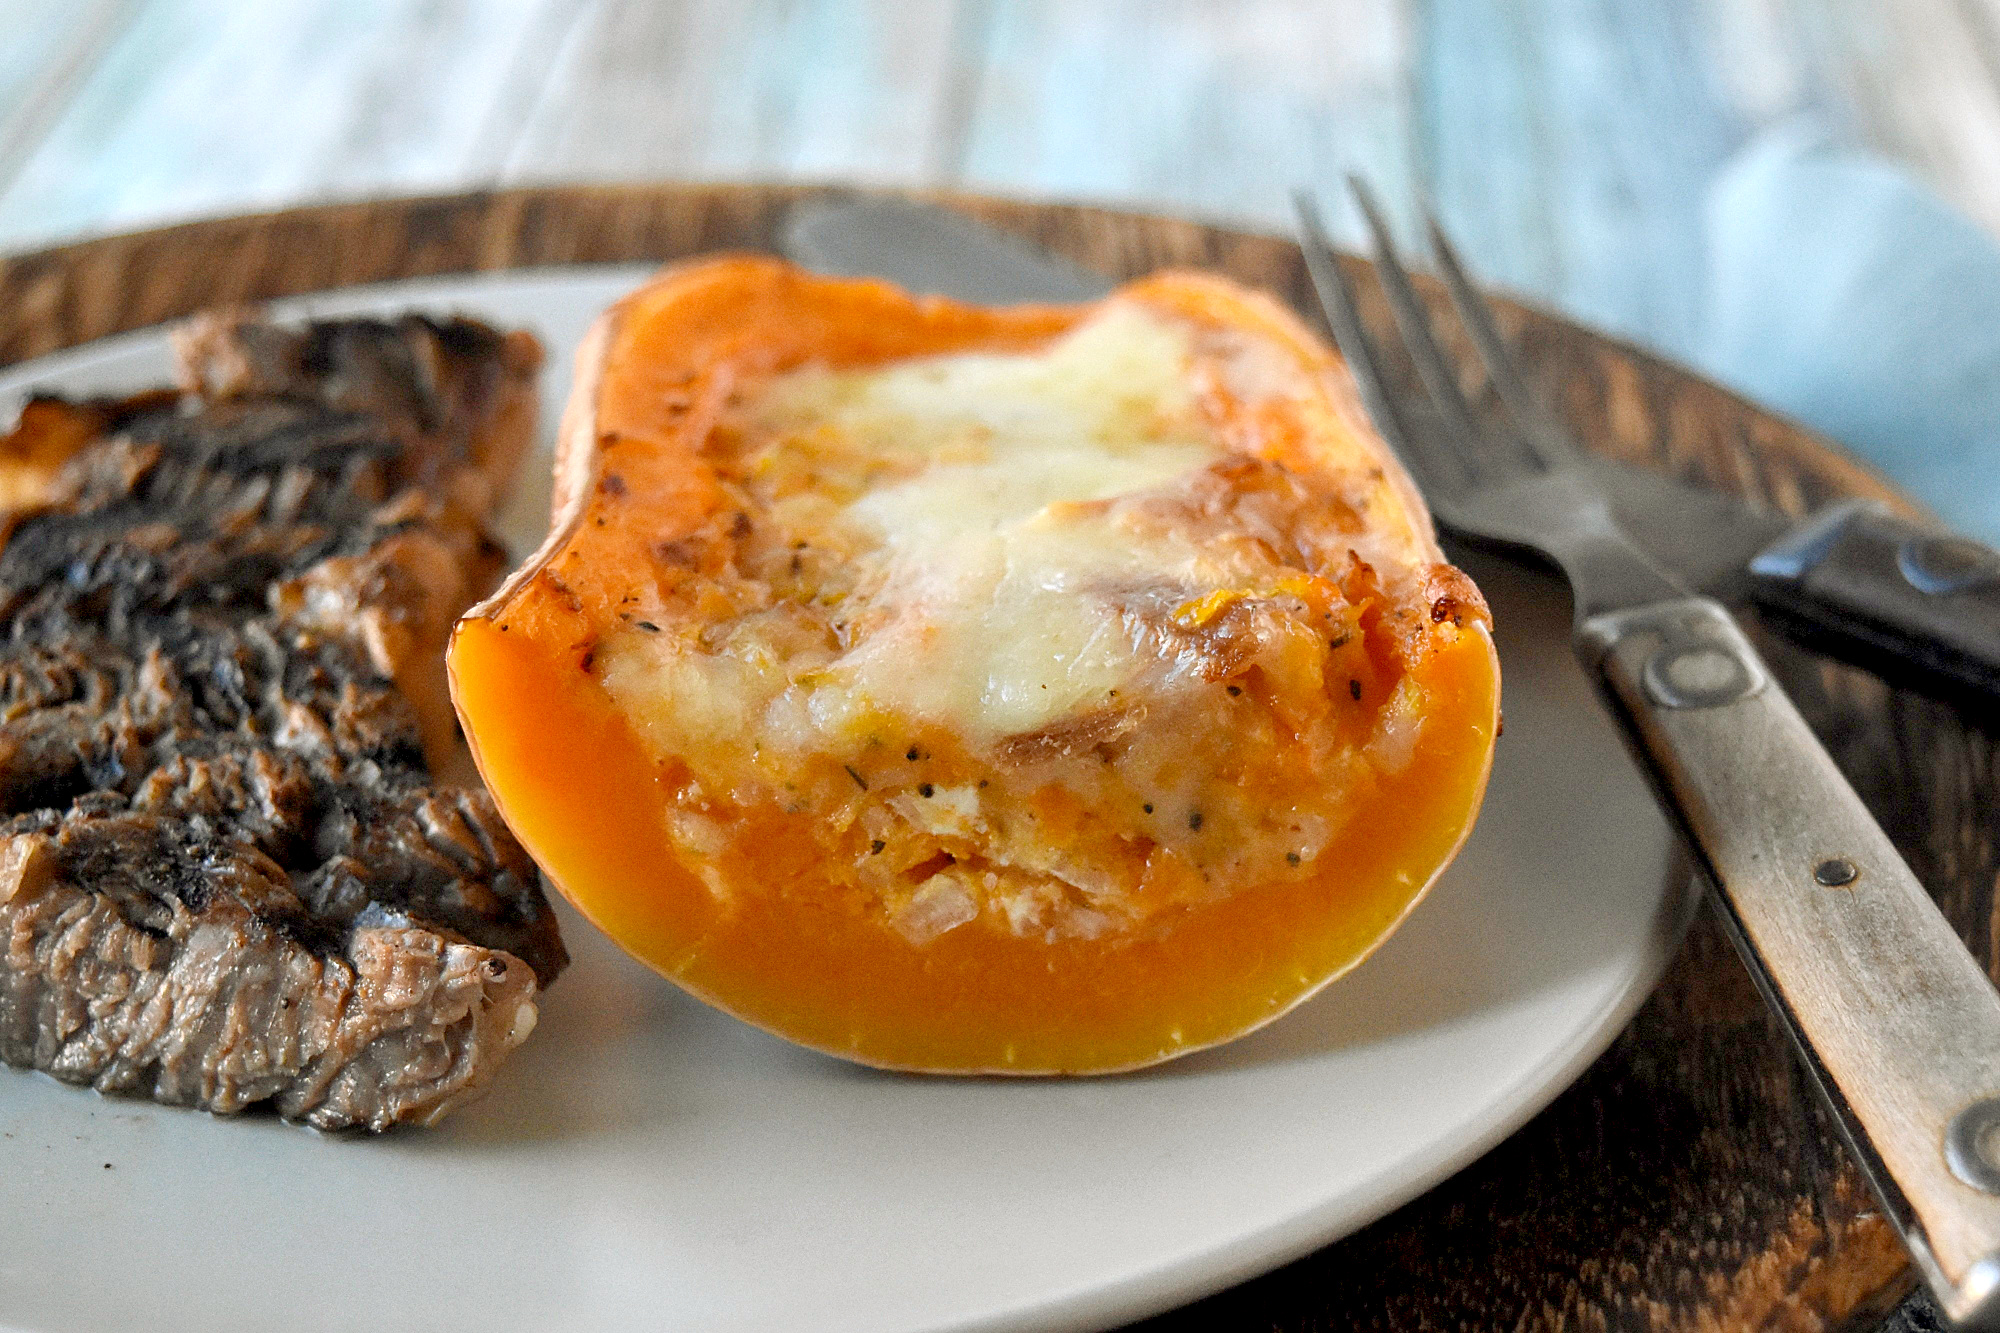 Twice Baked Butternut Squash is a twist on the twice baked potato. The sweet squash is combined with prosciutto, goat cheese, and shallots then topped with Gruyere cheese for a truly scrumptious side dish. #HolidaySideDishes